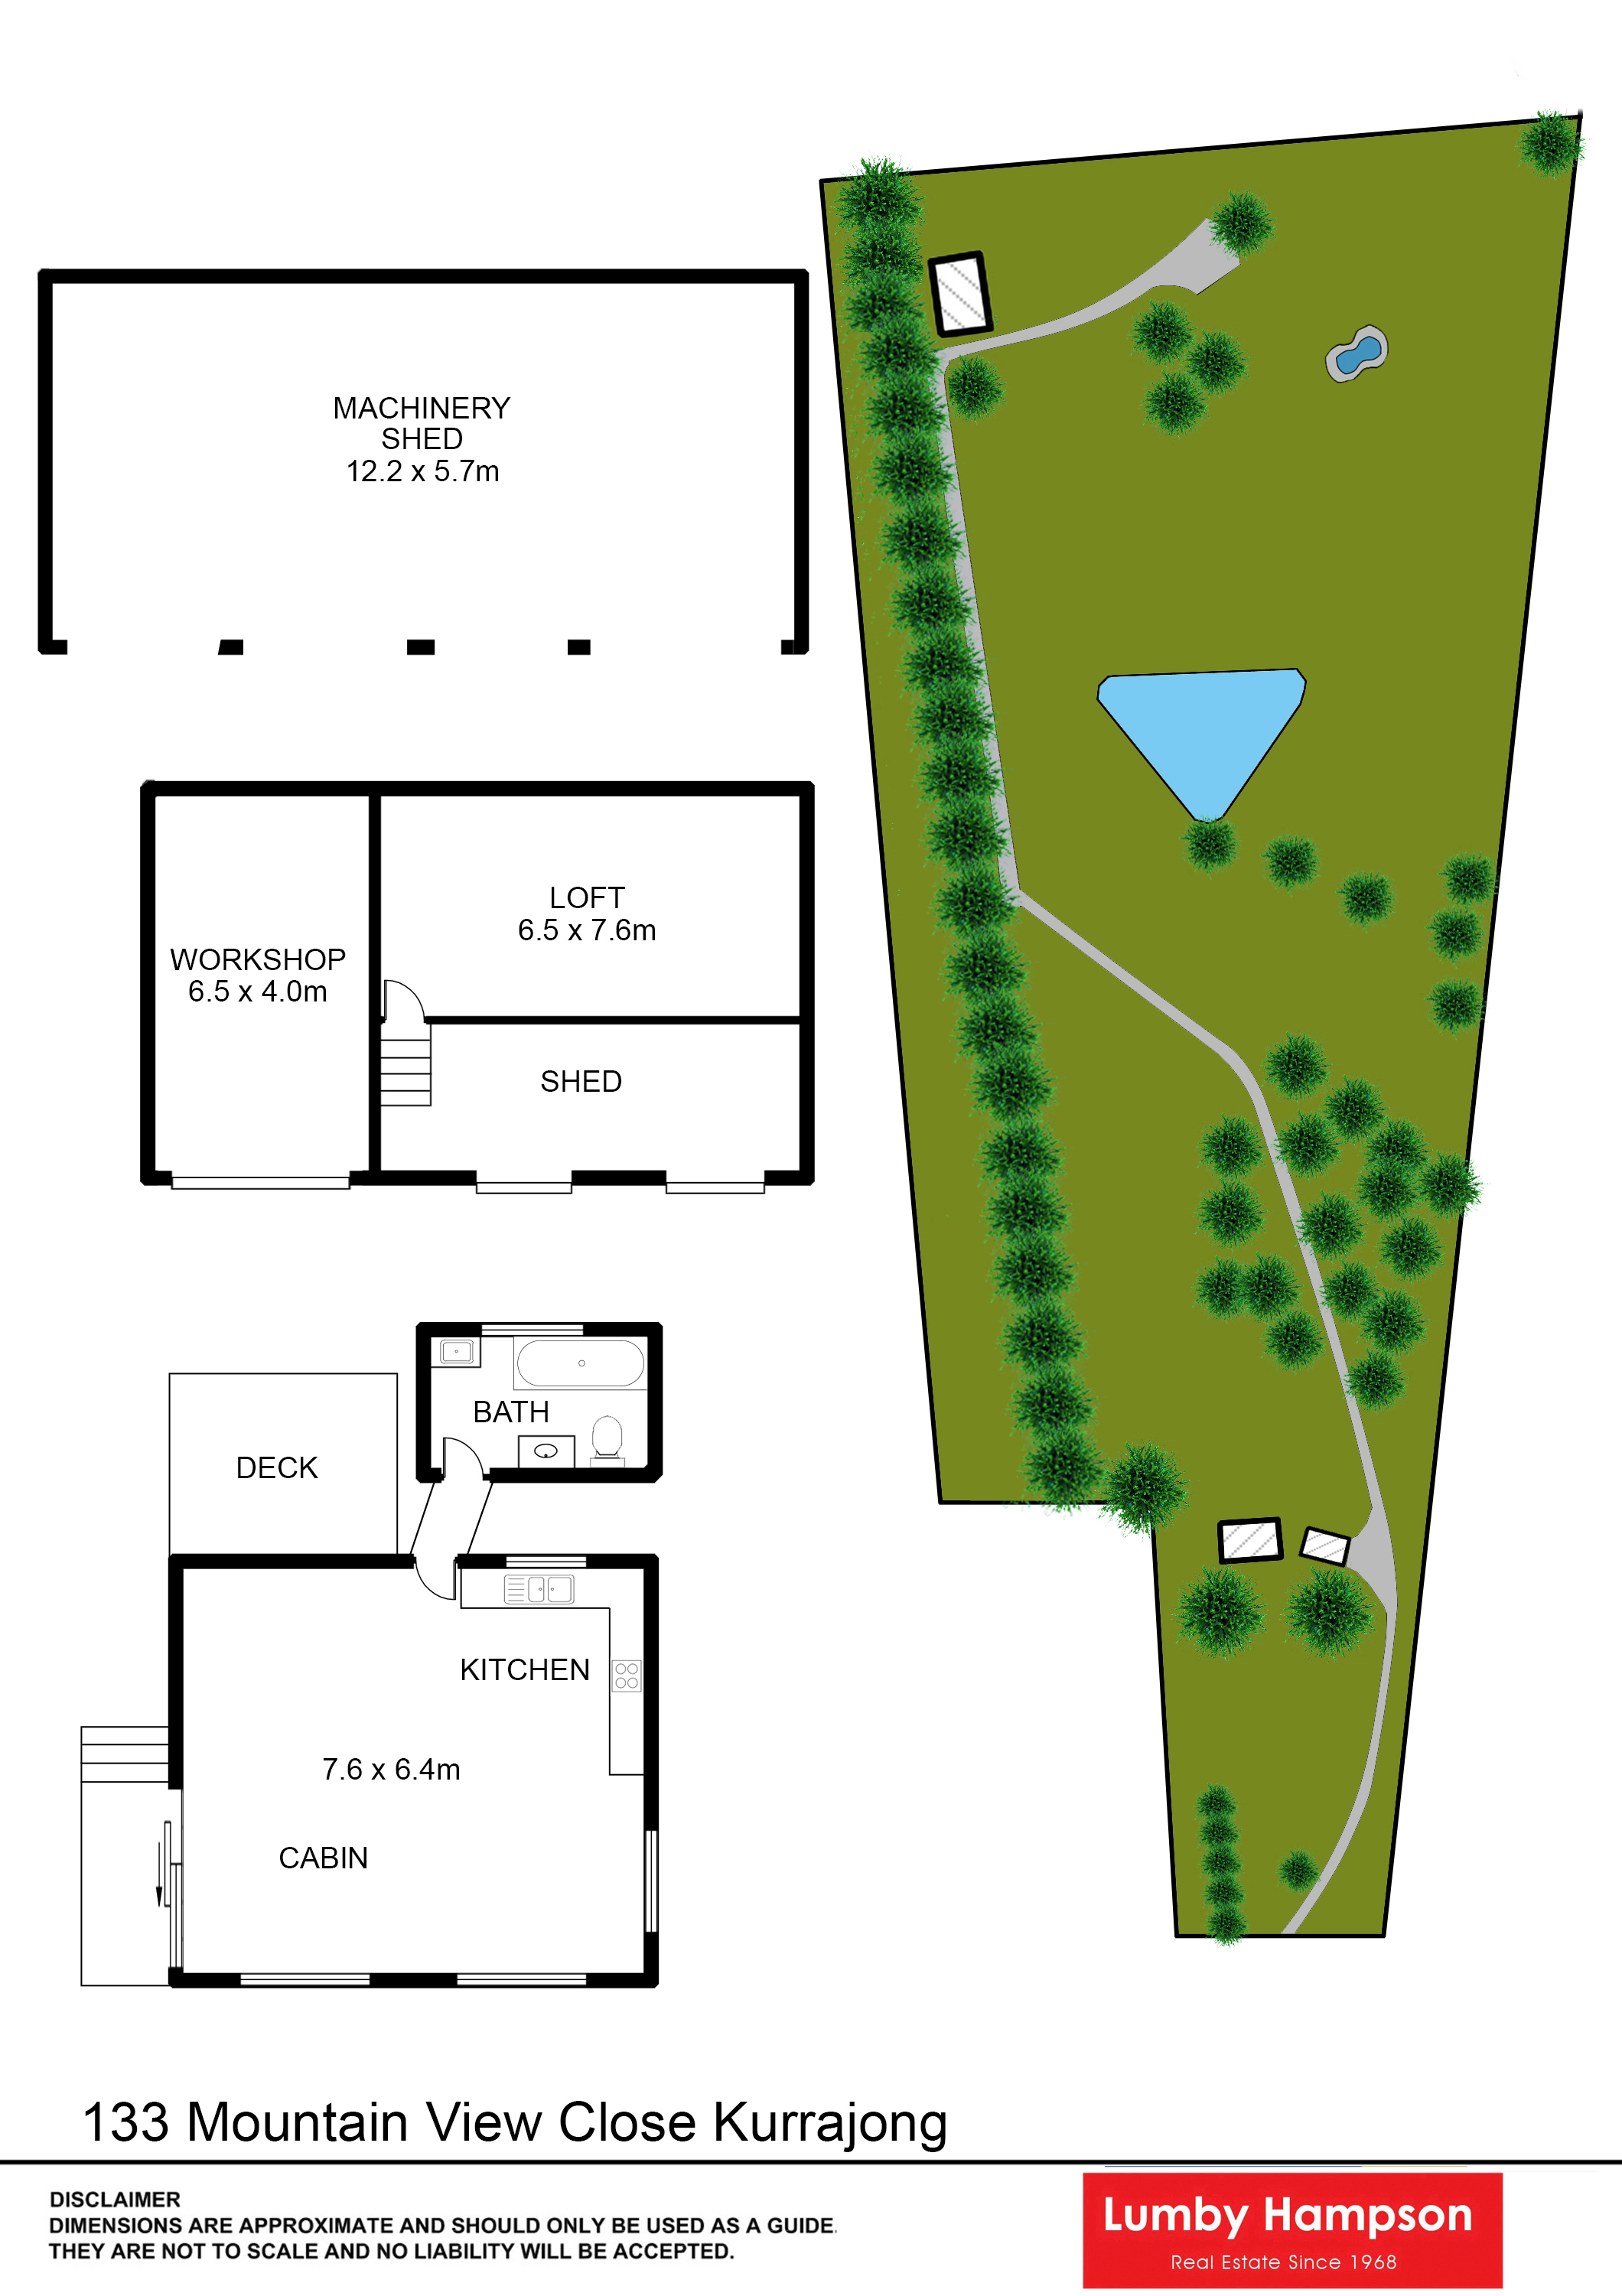 Lumby hampson 133 mountain view close kurrajong hills for 15 st judes terrace dural